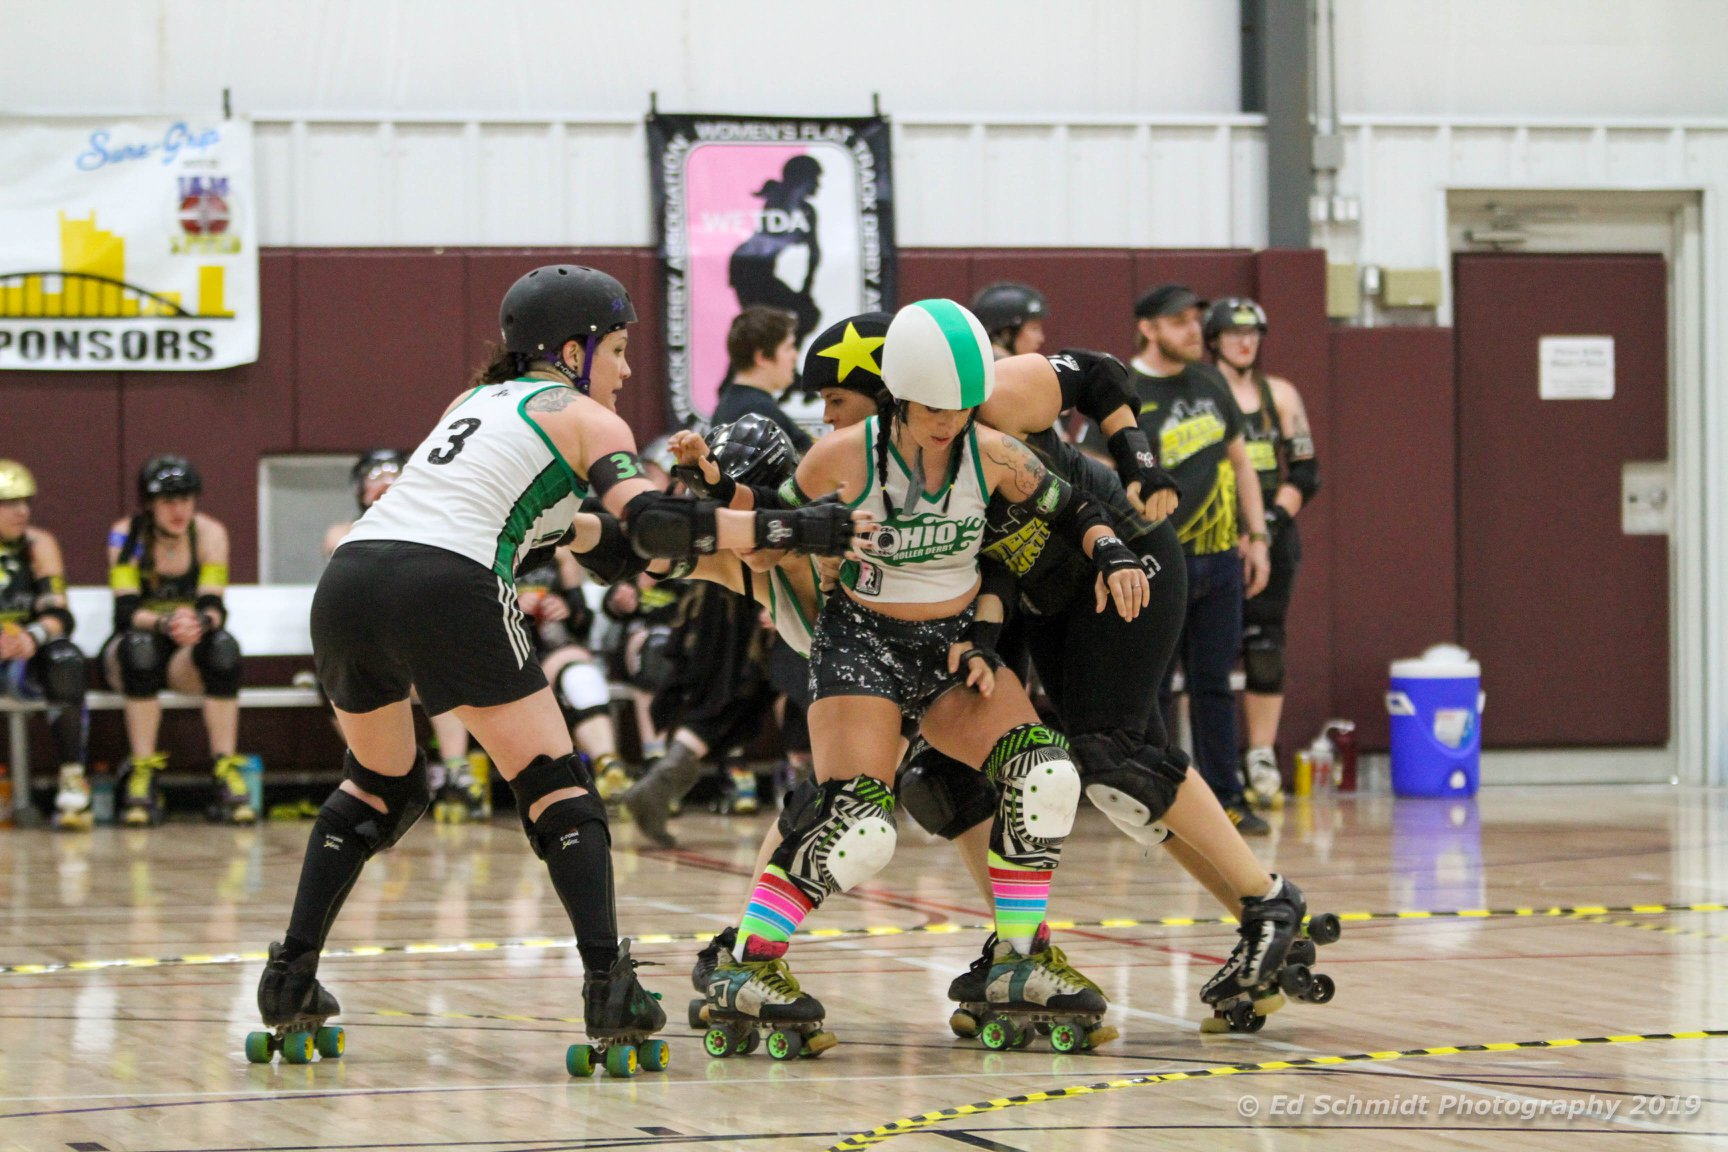 Betty Chainsaw blocking OHRD v Steel City 5.18.19 Ed Schmidt Photography